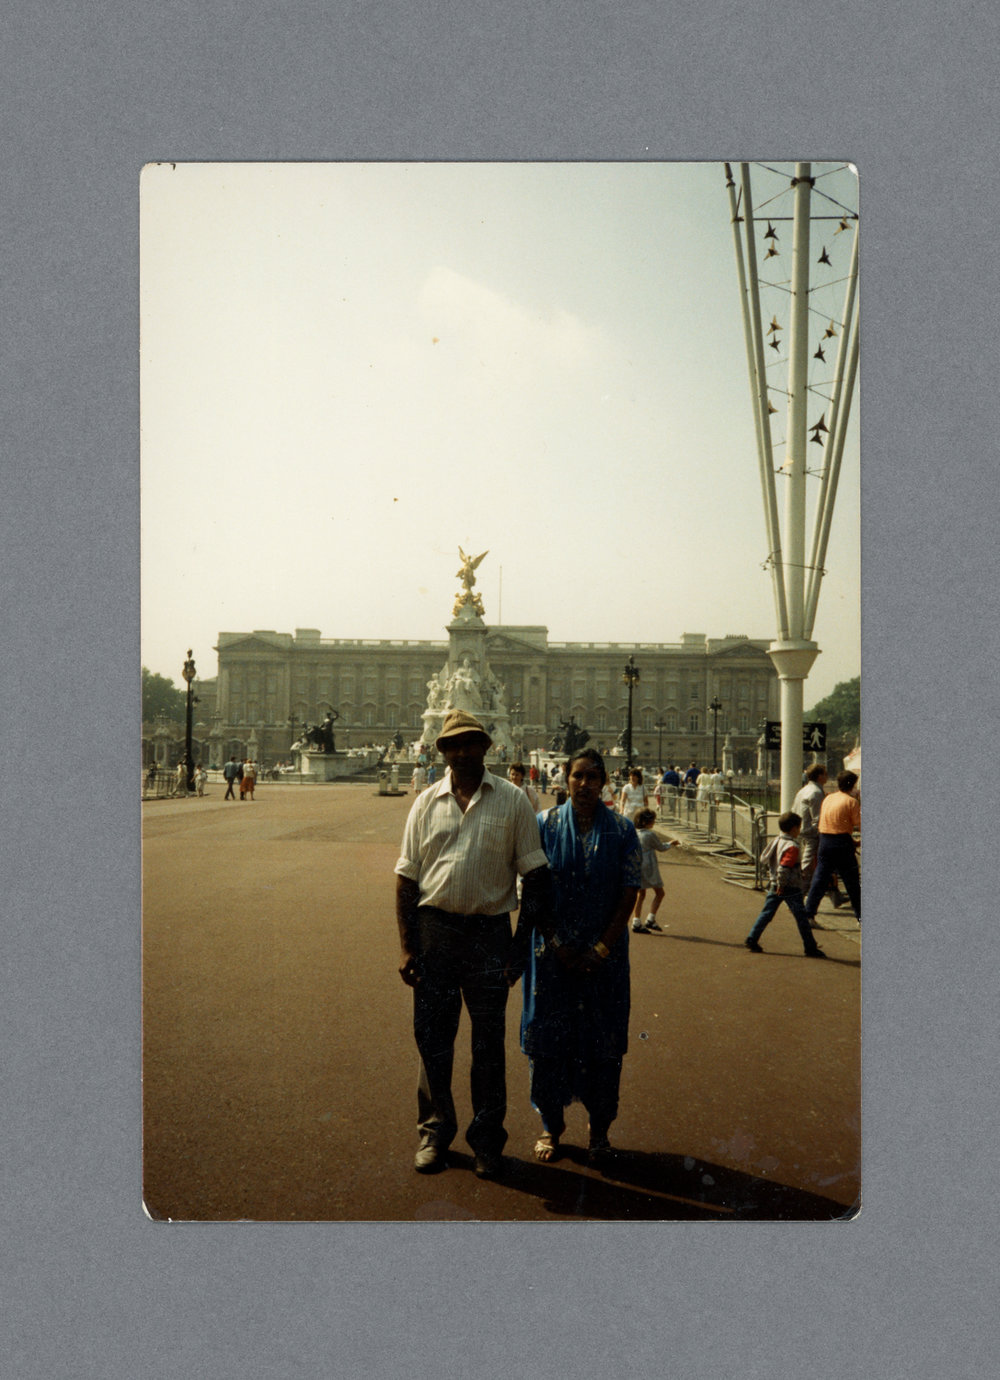 Buckingham Palace, London c.1986